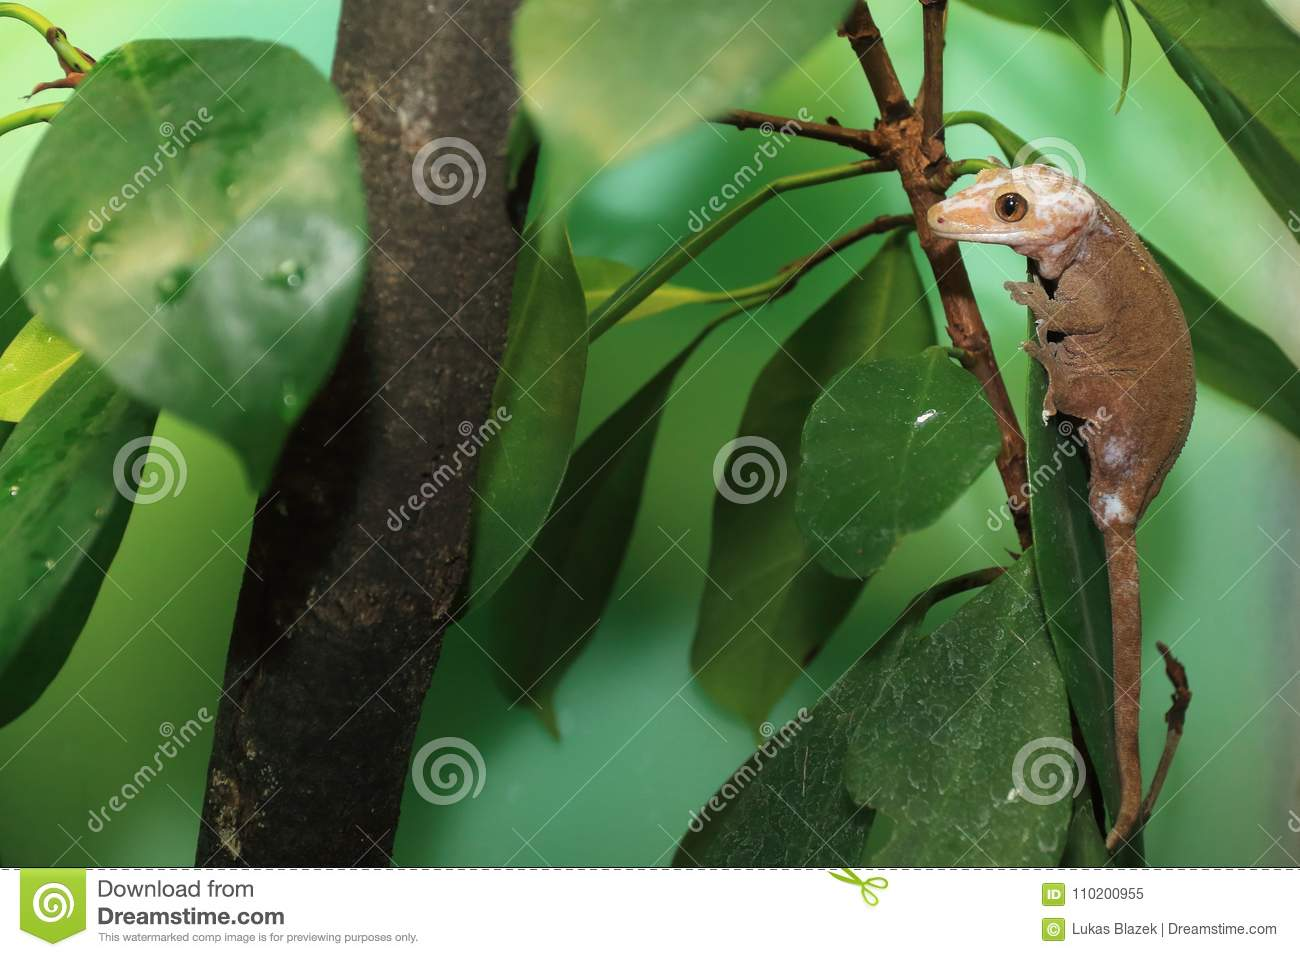 Crested Gecko Stock Image Image Of Eyelash Gecko Young 110200955